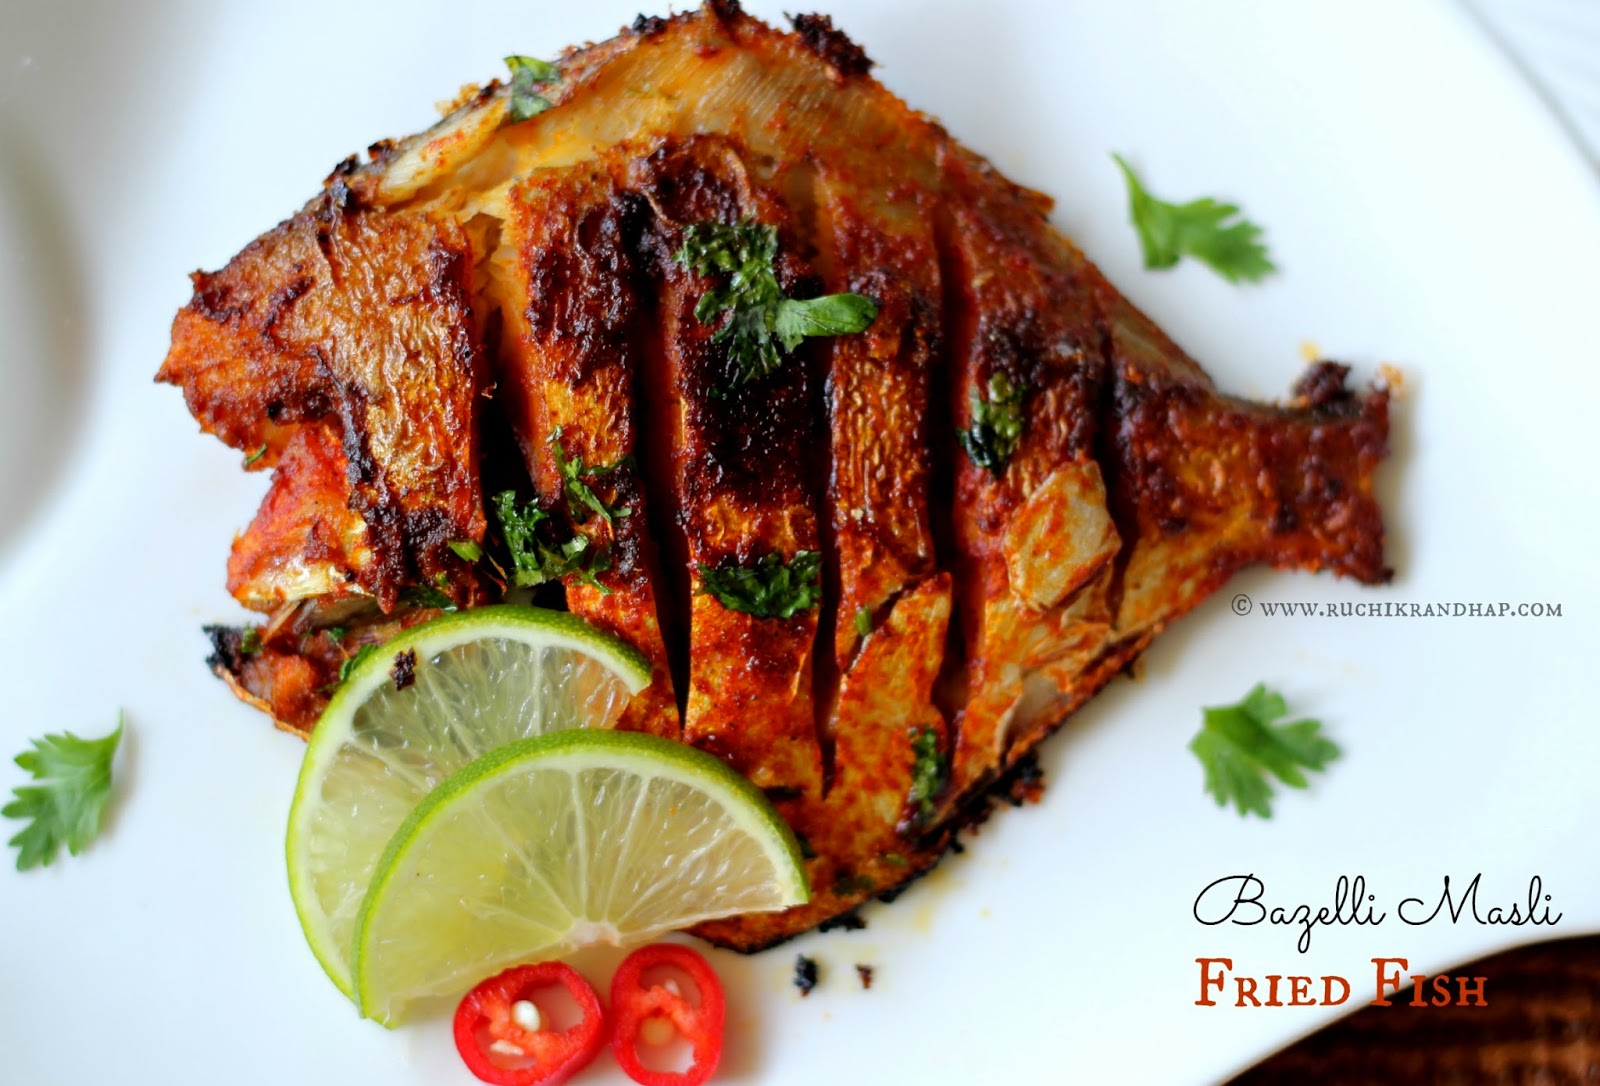 ... (Delicious Cooking): Bazelli Masli ~ Fried Fish (Basic Marination